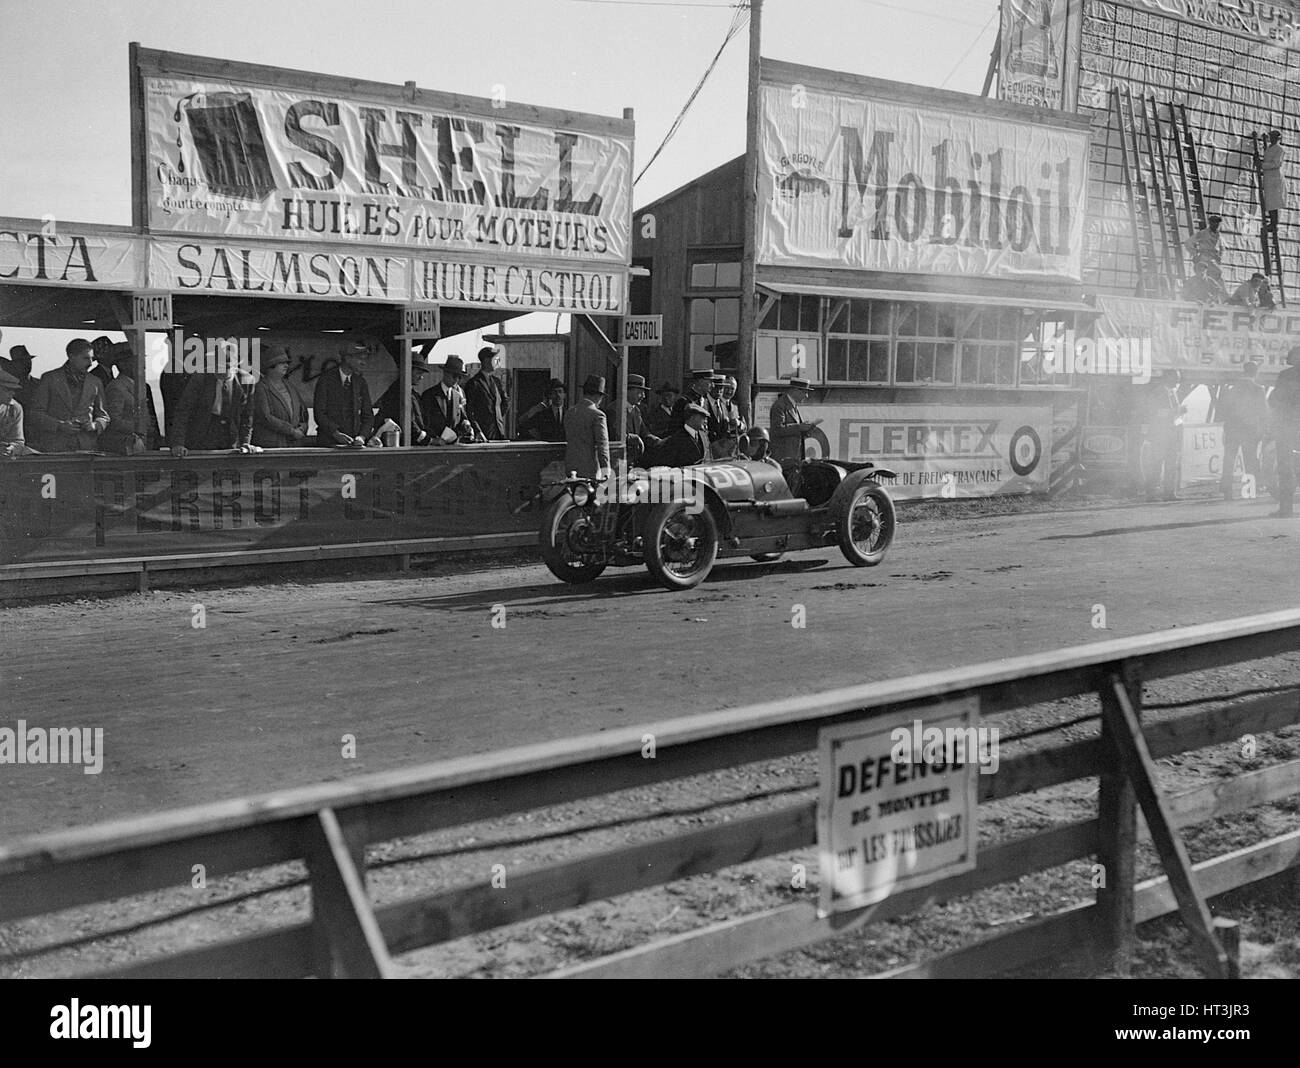 Amilcar C6 of Miss Maconochie competing at the Boulogne Motor Week, France, 1928. Artist: Bill Brunell. - Stock Image